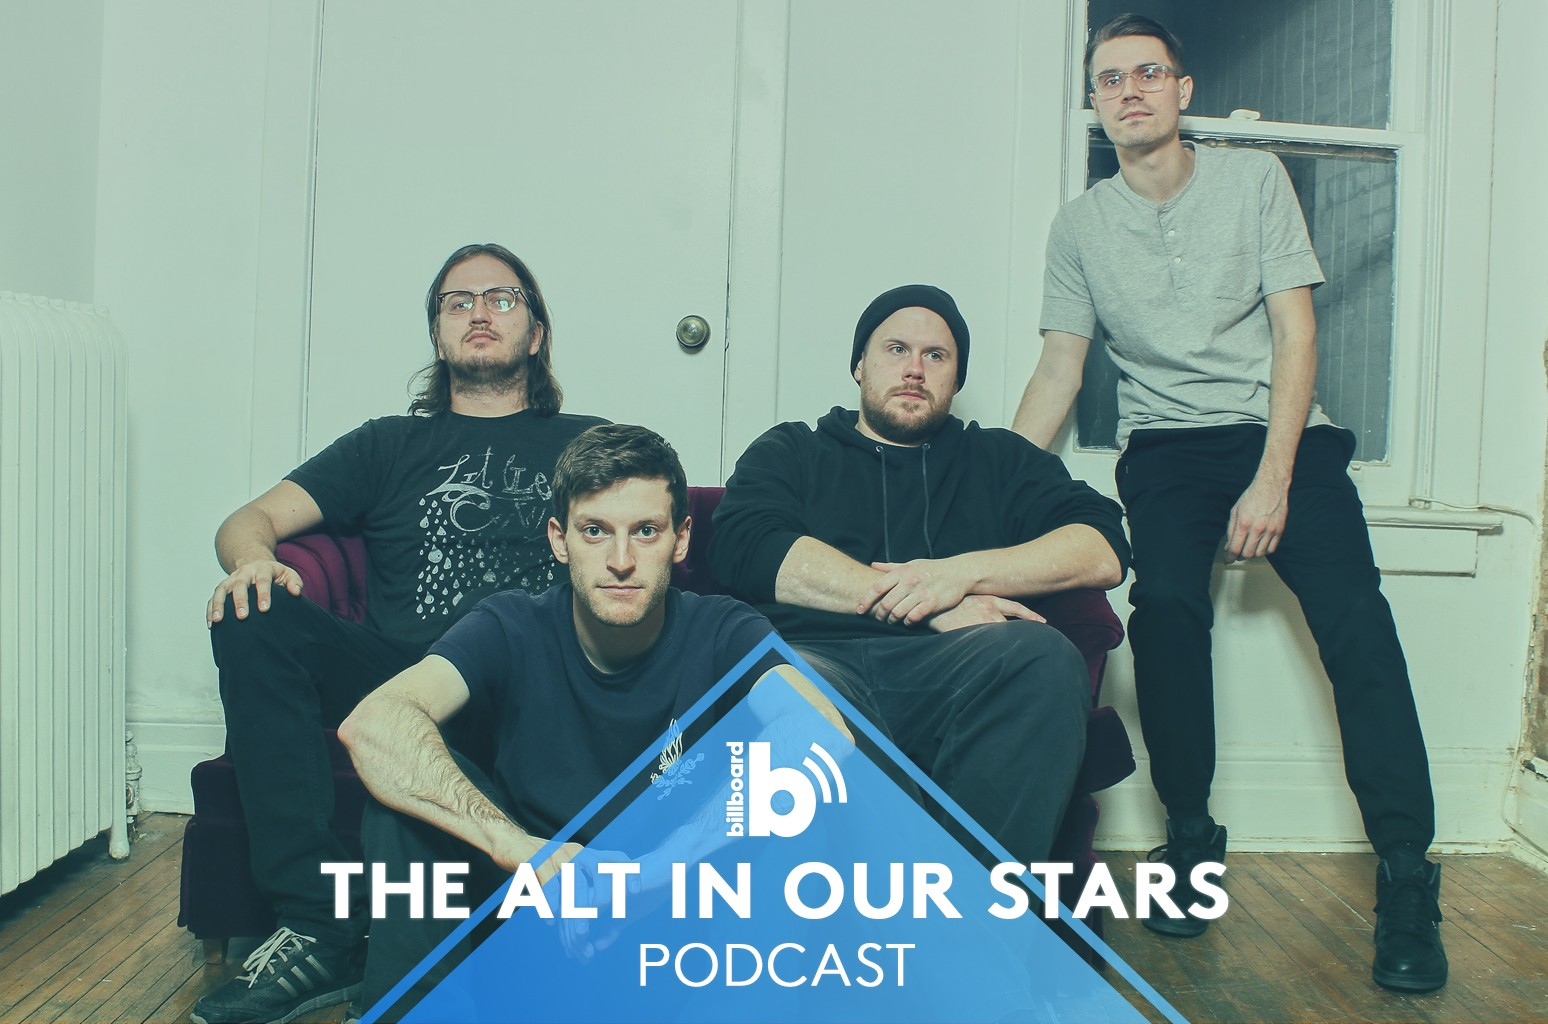 The Alt in Our Stars Podcast featuring: Pup